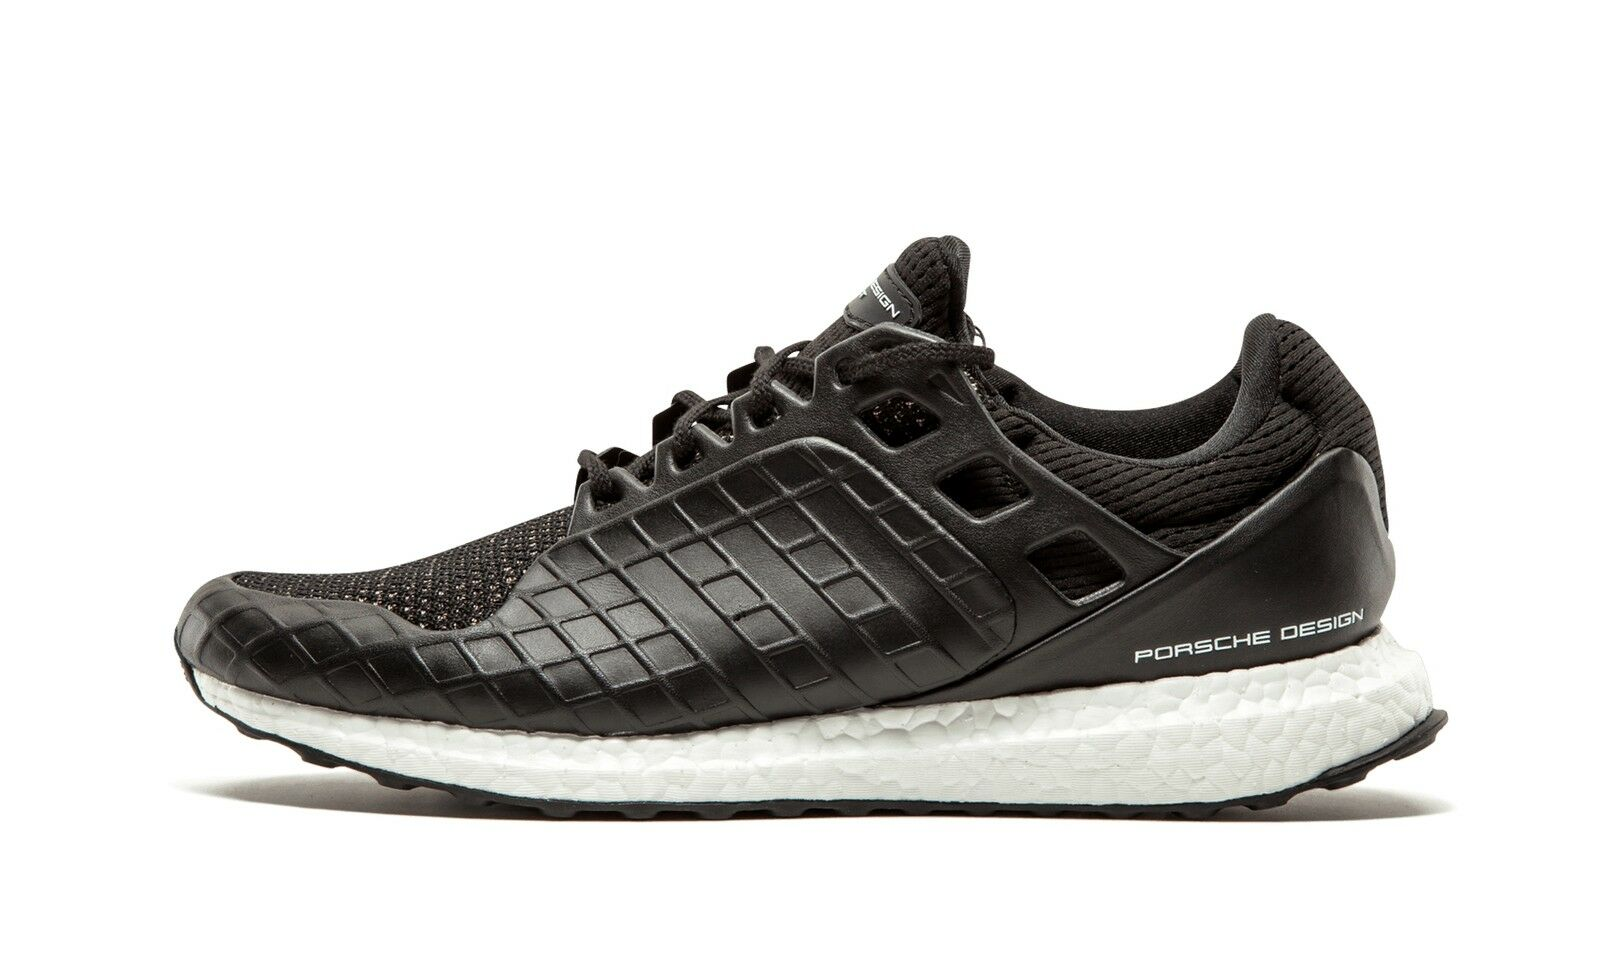 adidas pds ultra boost trainer porsche design sport. Black Bedroom Furniture Sets. Home Design Ideas